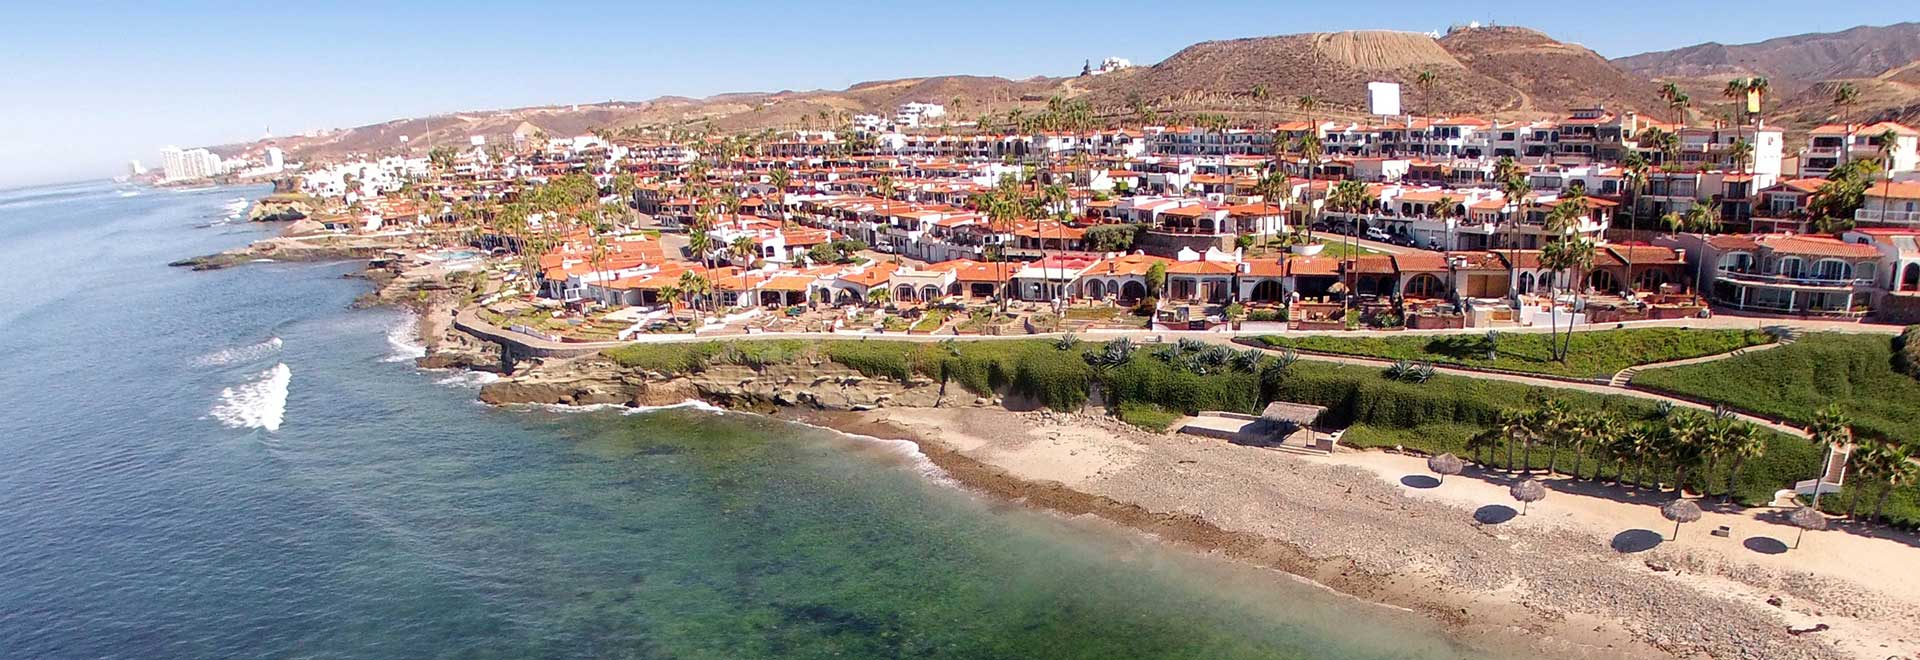 Hotel Mision Ensenada Hotel Mision Santa Isabel Updated